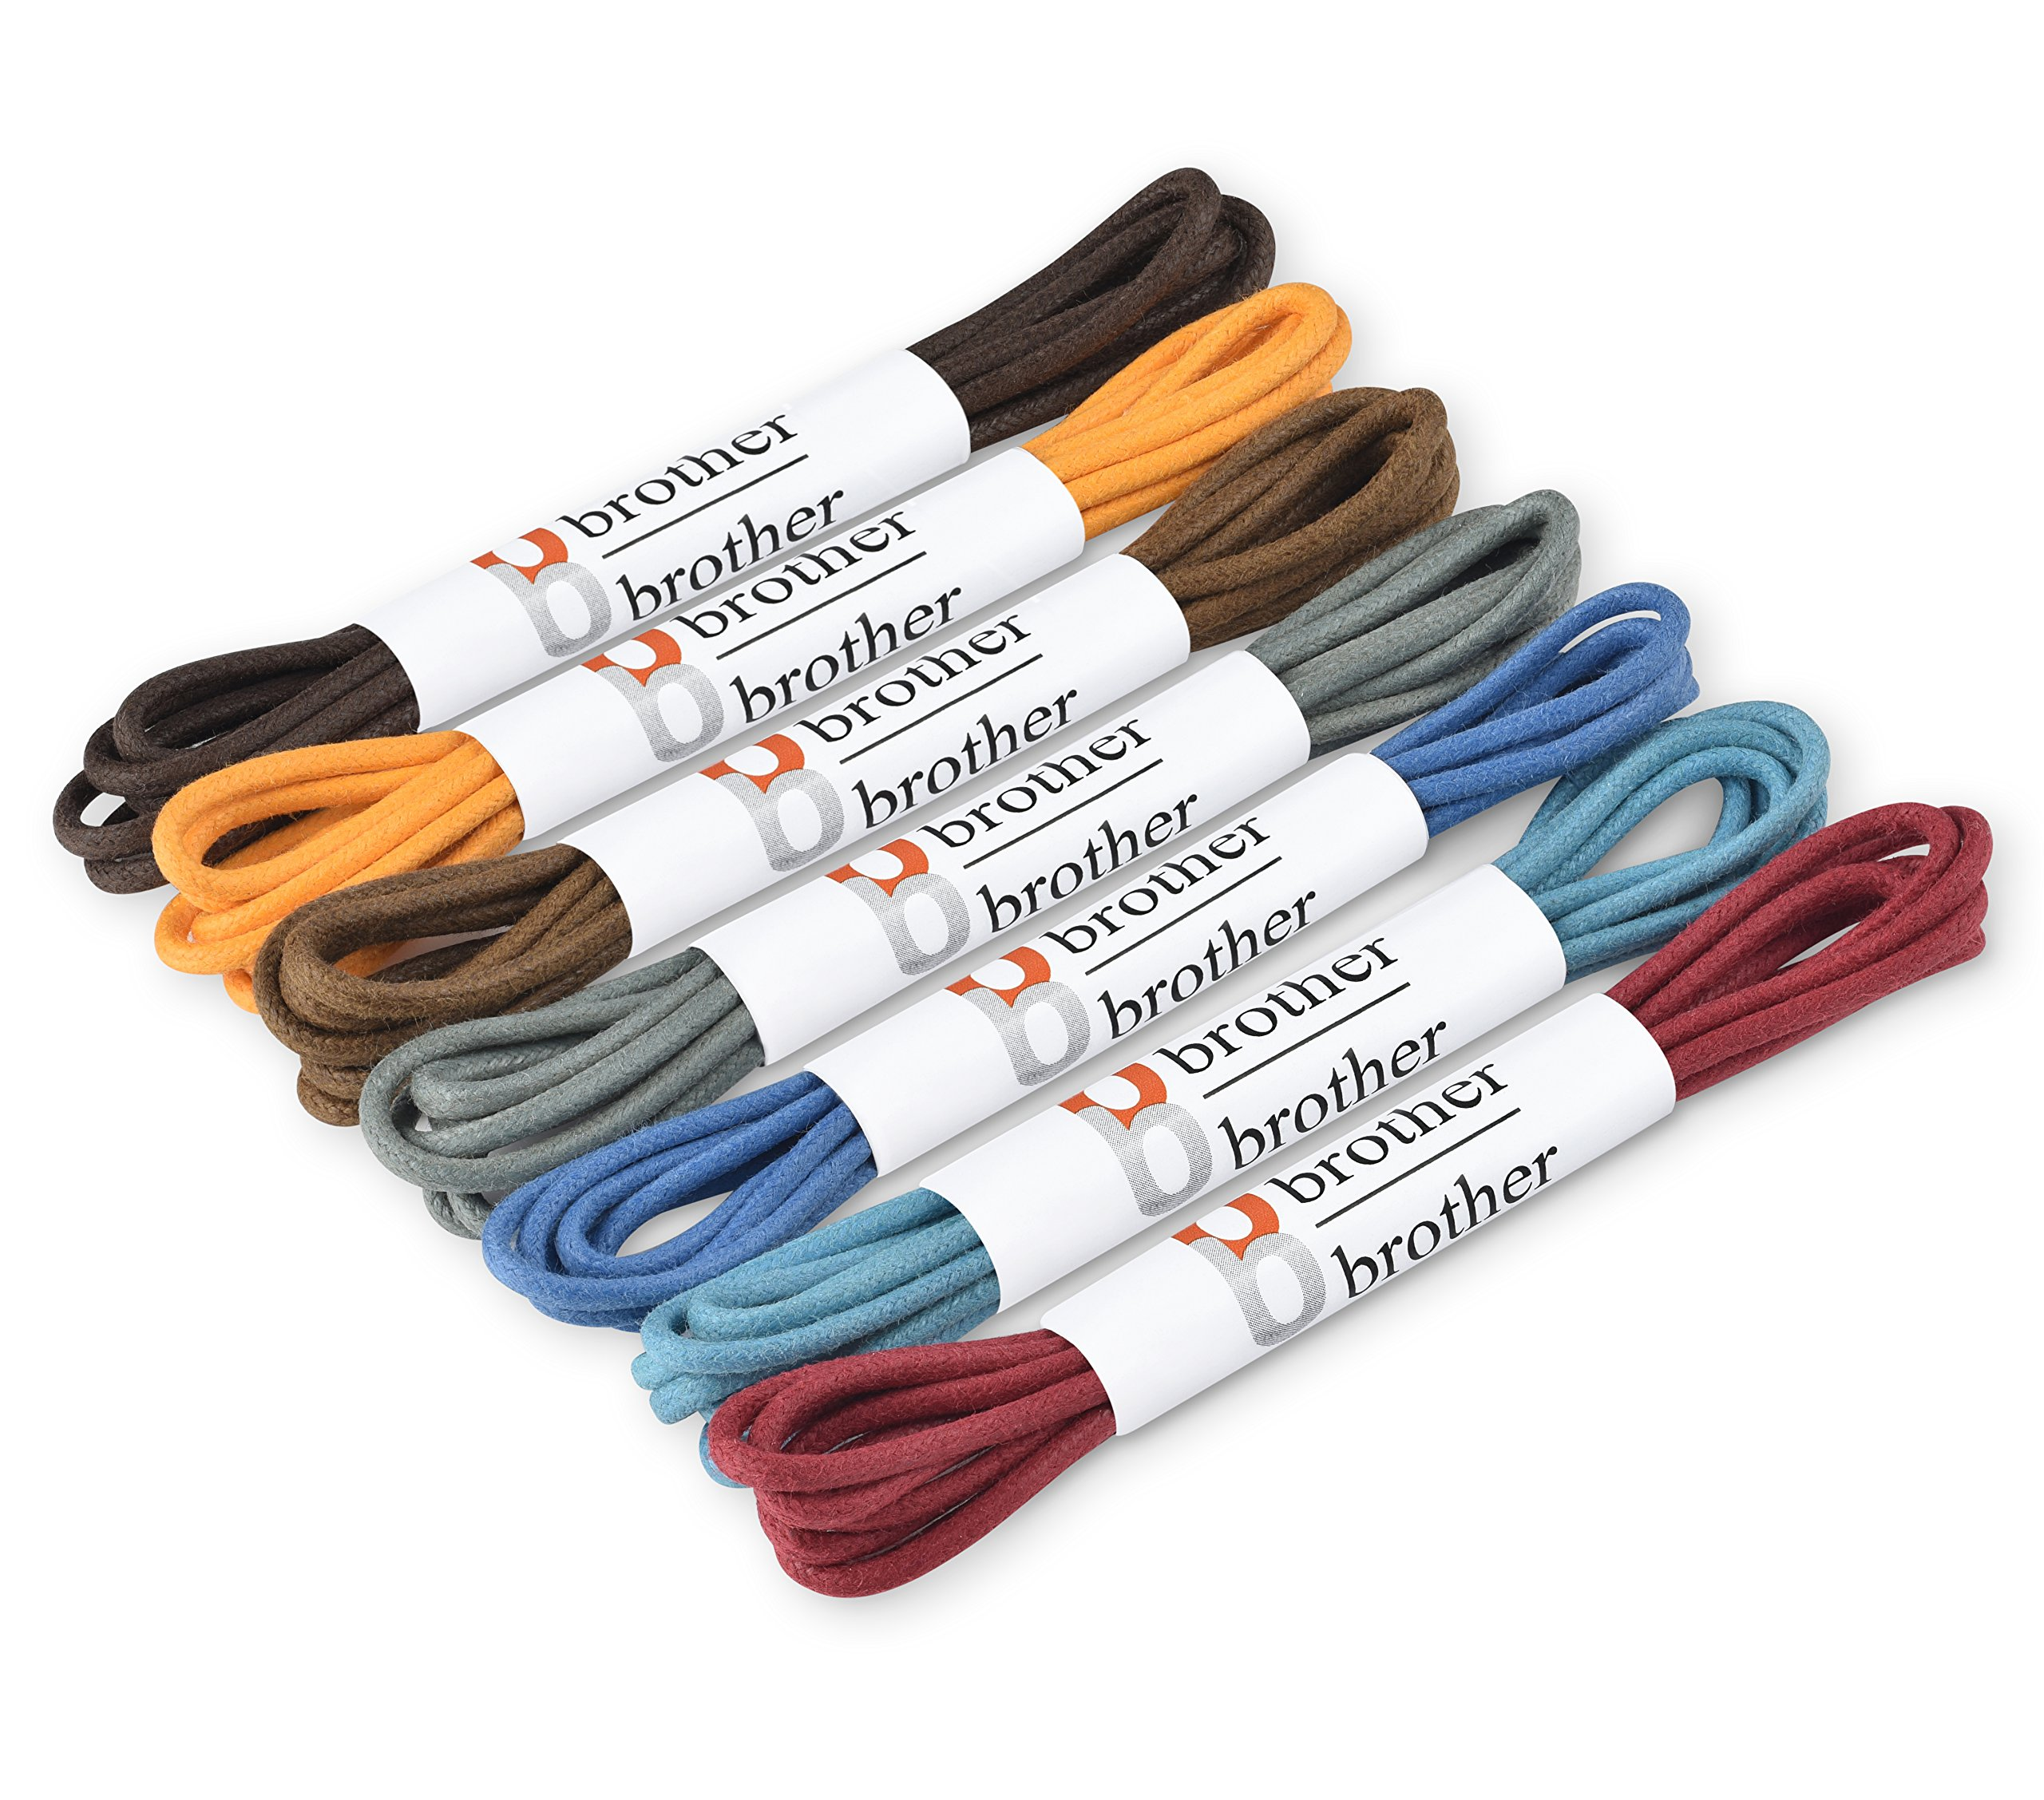 Brother Brother Colored Oxford Shoe Laces for Men (7 Pairs) | 100% Cotton Round and Waxed Shoelaces for Dress Shoes | Gift Box with Brown, Silky Violet, Burgundy, Mustard, Blue, Light Blue, Chocolate by brother brother (Image #3)